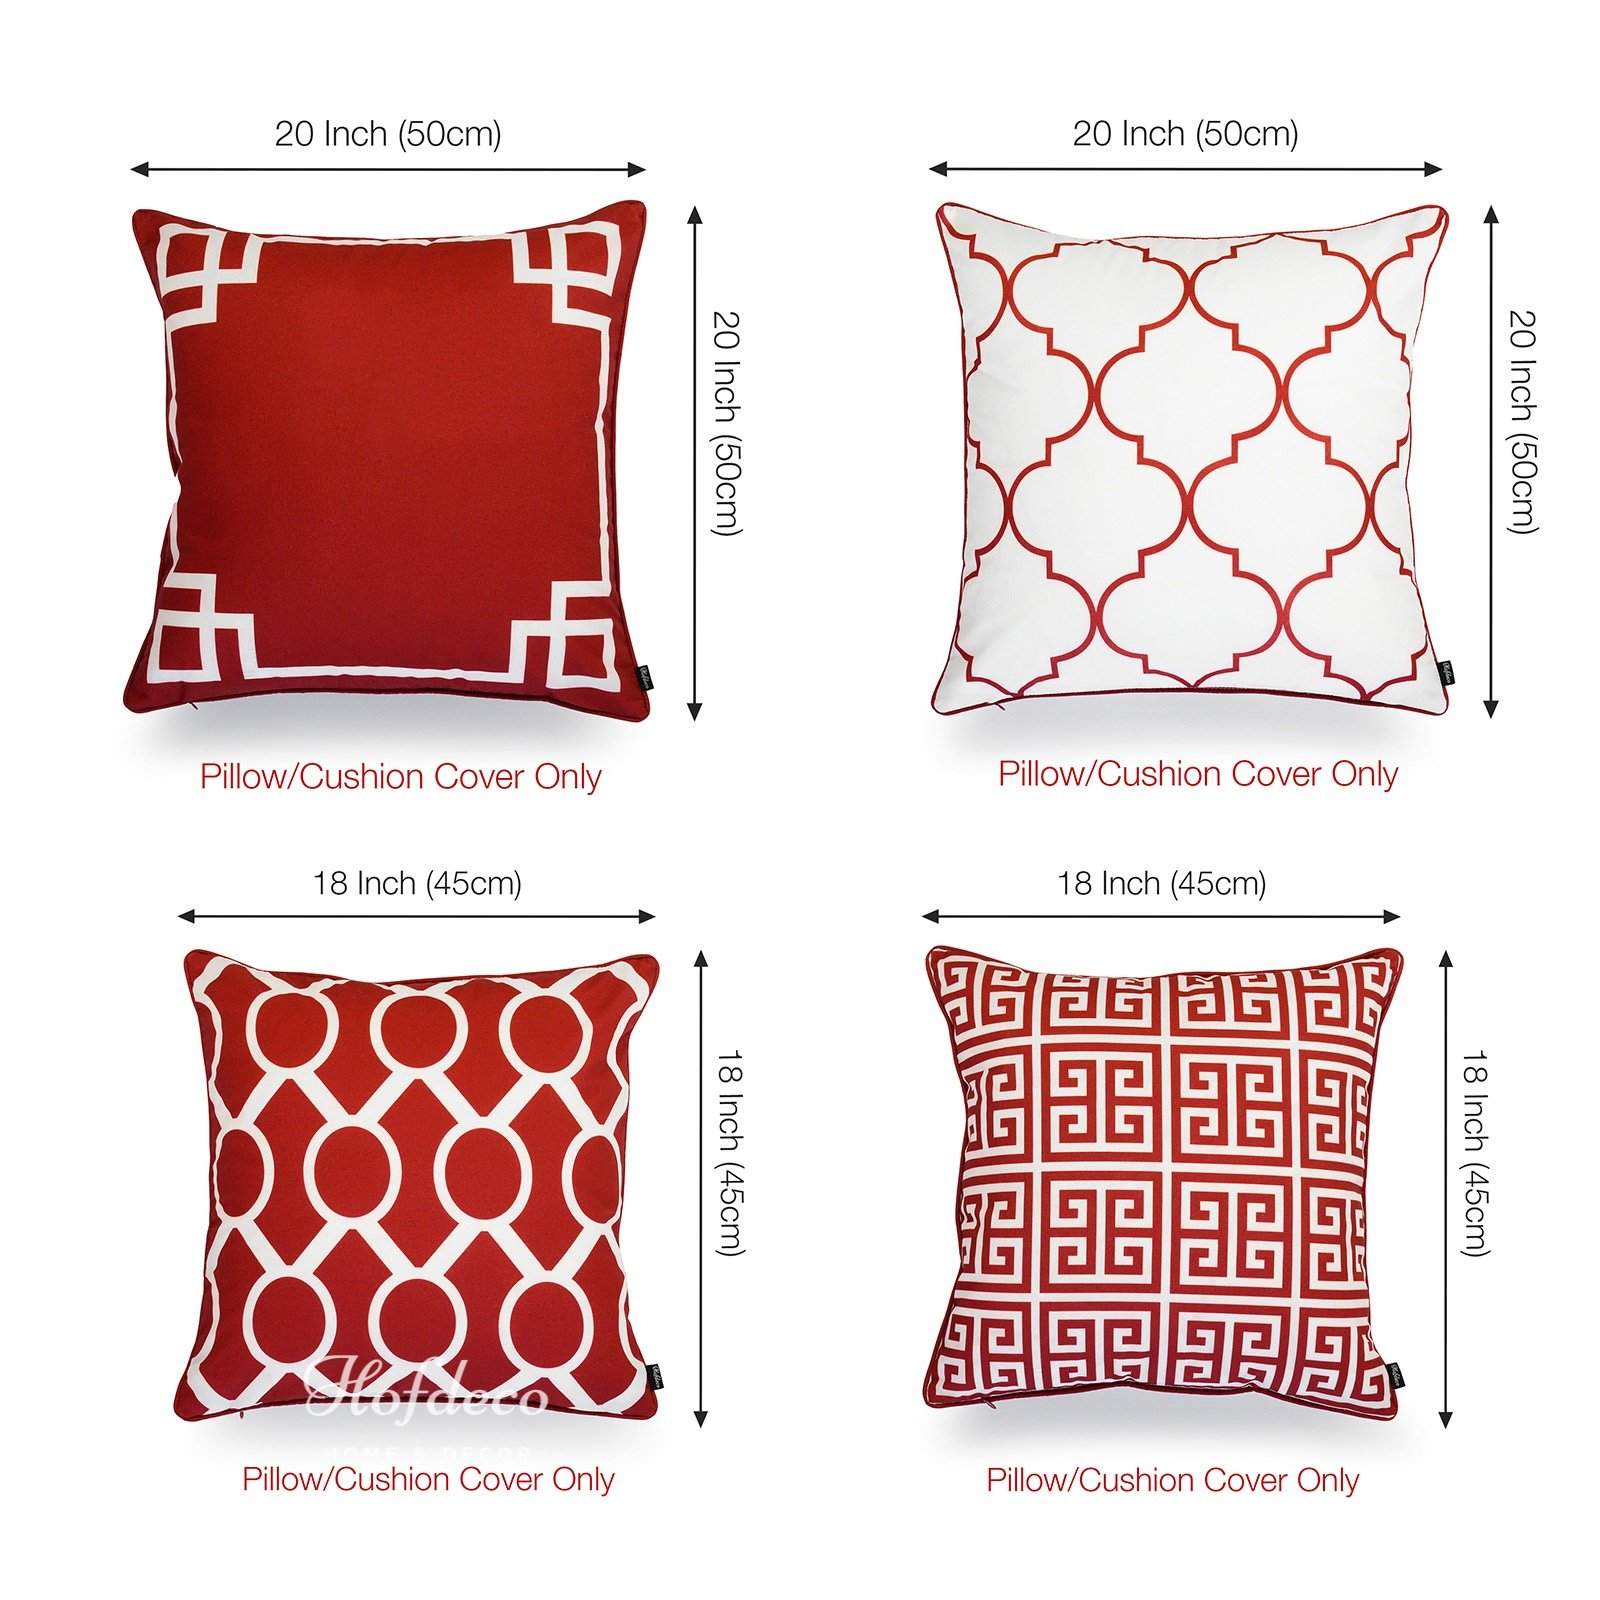 Hofdeco Valentine Indoor Outdoor Pillow Cover Only Water Resistant For Patio Lounge Sofa Red White Greek Key Moroccan Chain 18 X18 20 X20 Set Of 4 Home Kitchen Amazon Com